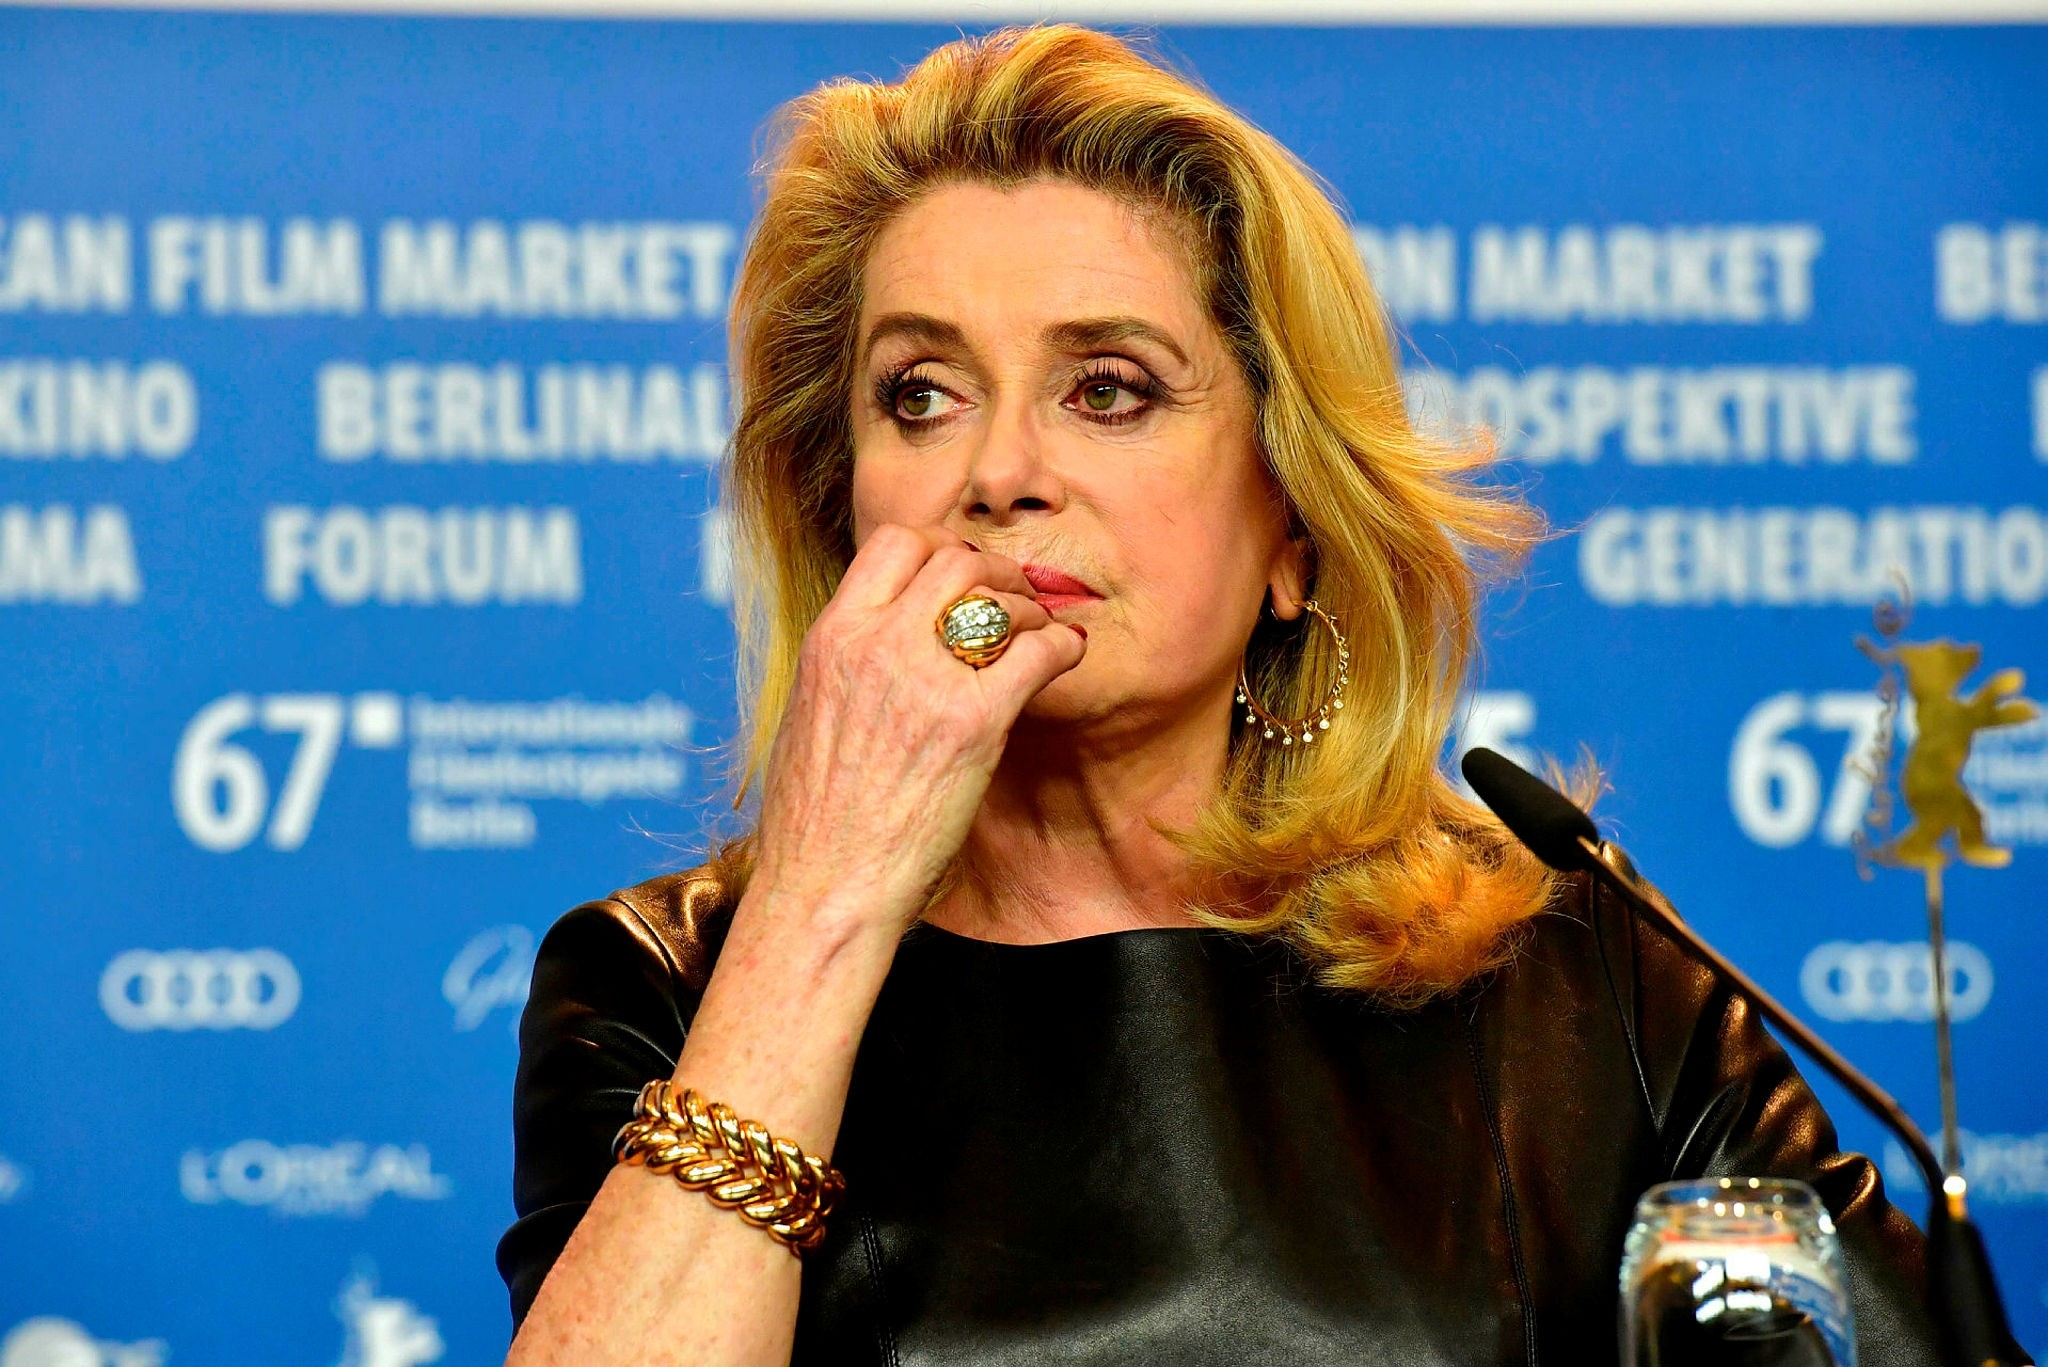 This file photo taken on February 14, 2017 shows French actress Catherine Deneuve attending a press conference for the film ,Sage Femme, (The Midwife) in competition at the 67th Berlinale film festival in Berlin. (AFP Photo)